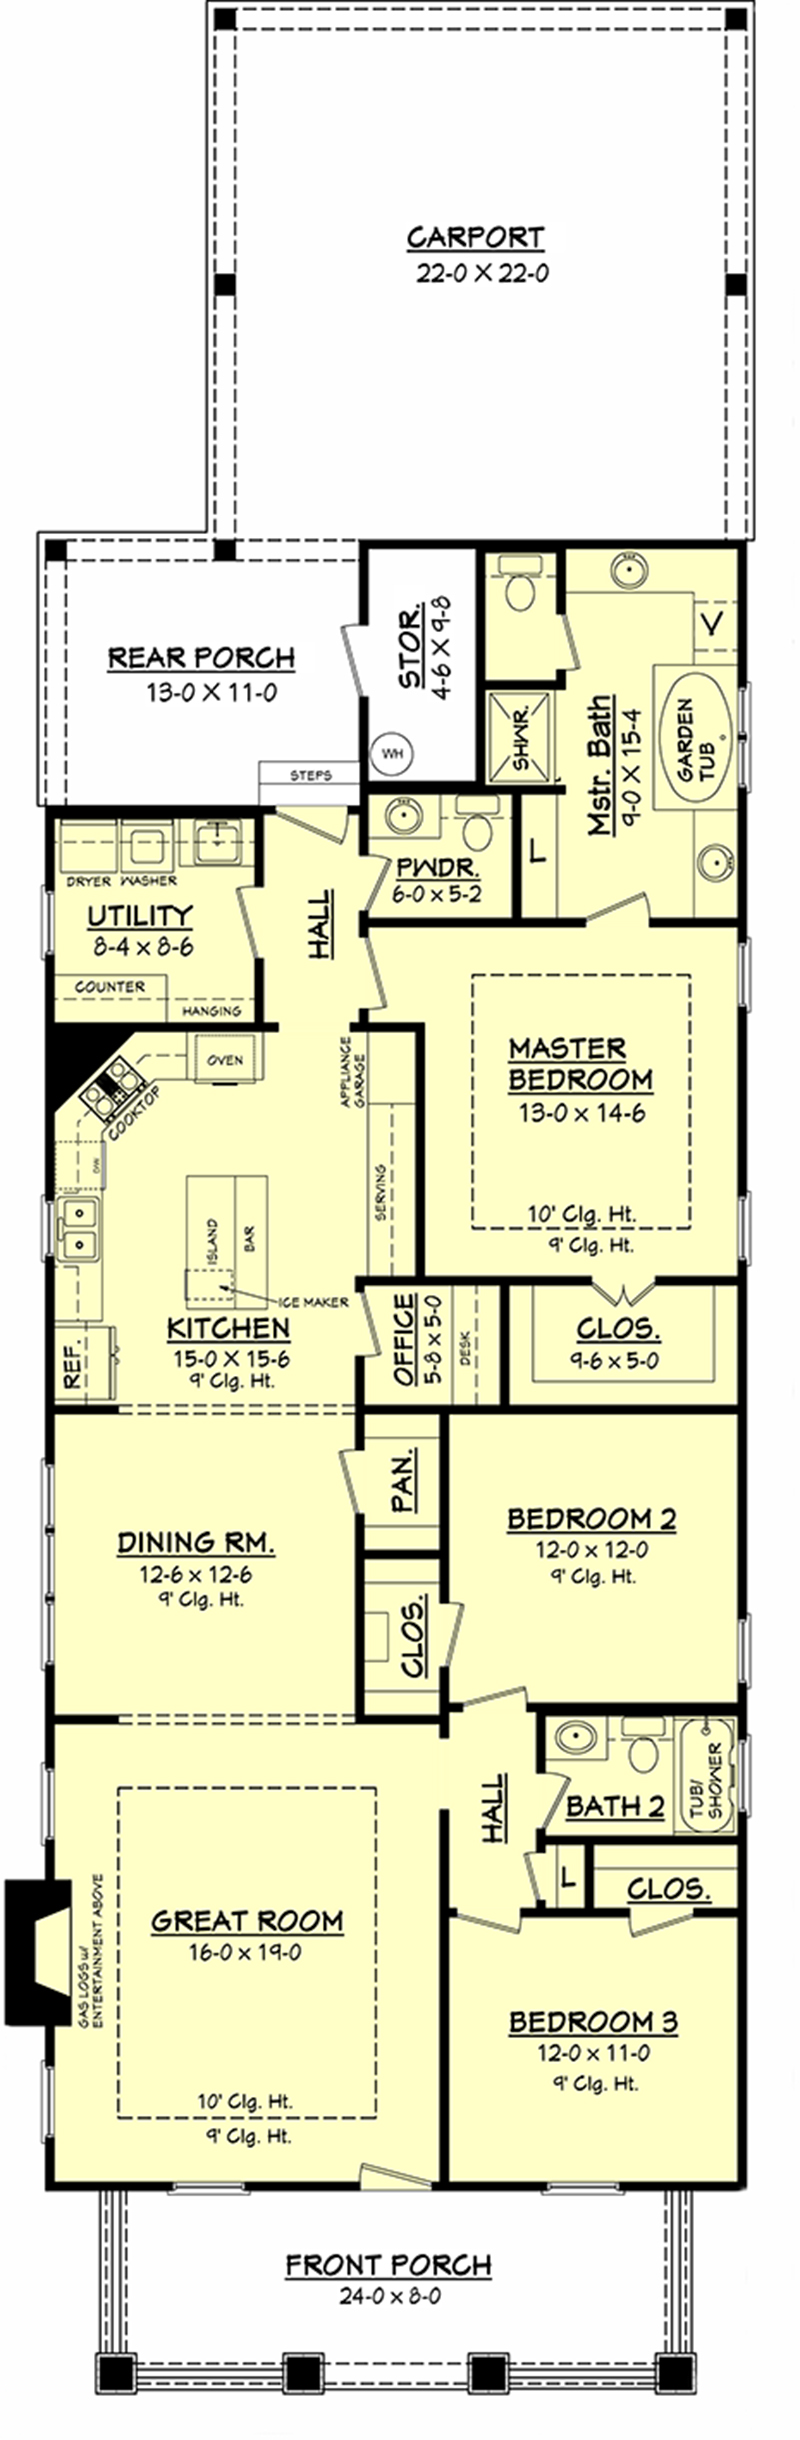 House plan 142 1079 3 bdrm 2 1 2 bath 1800 sq ft for One story 1800 sq ft house plans